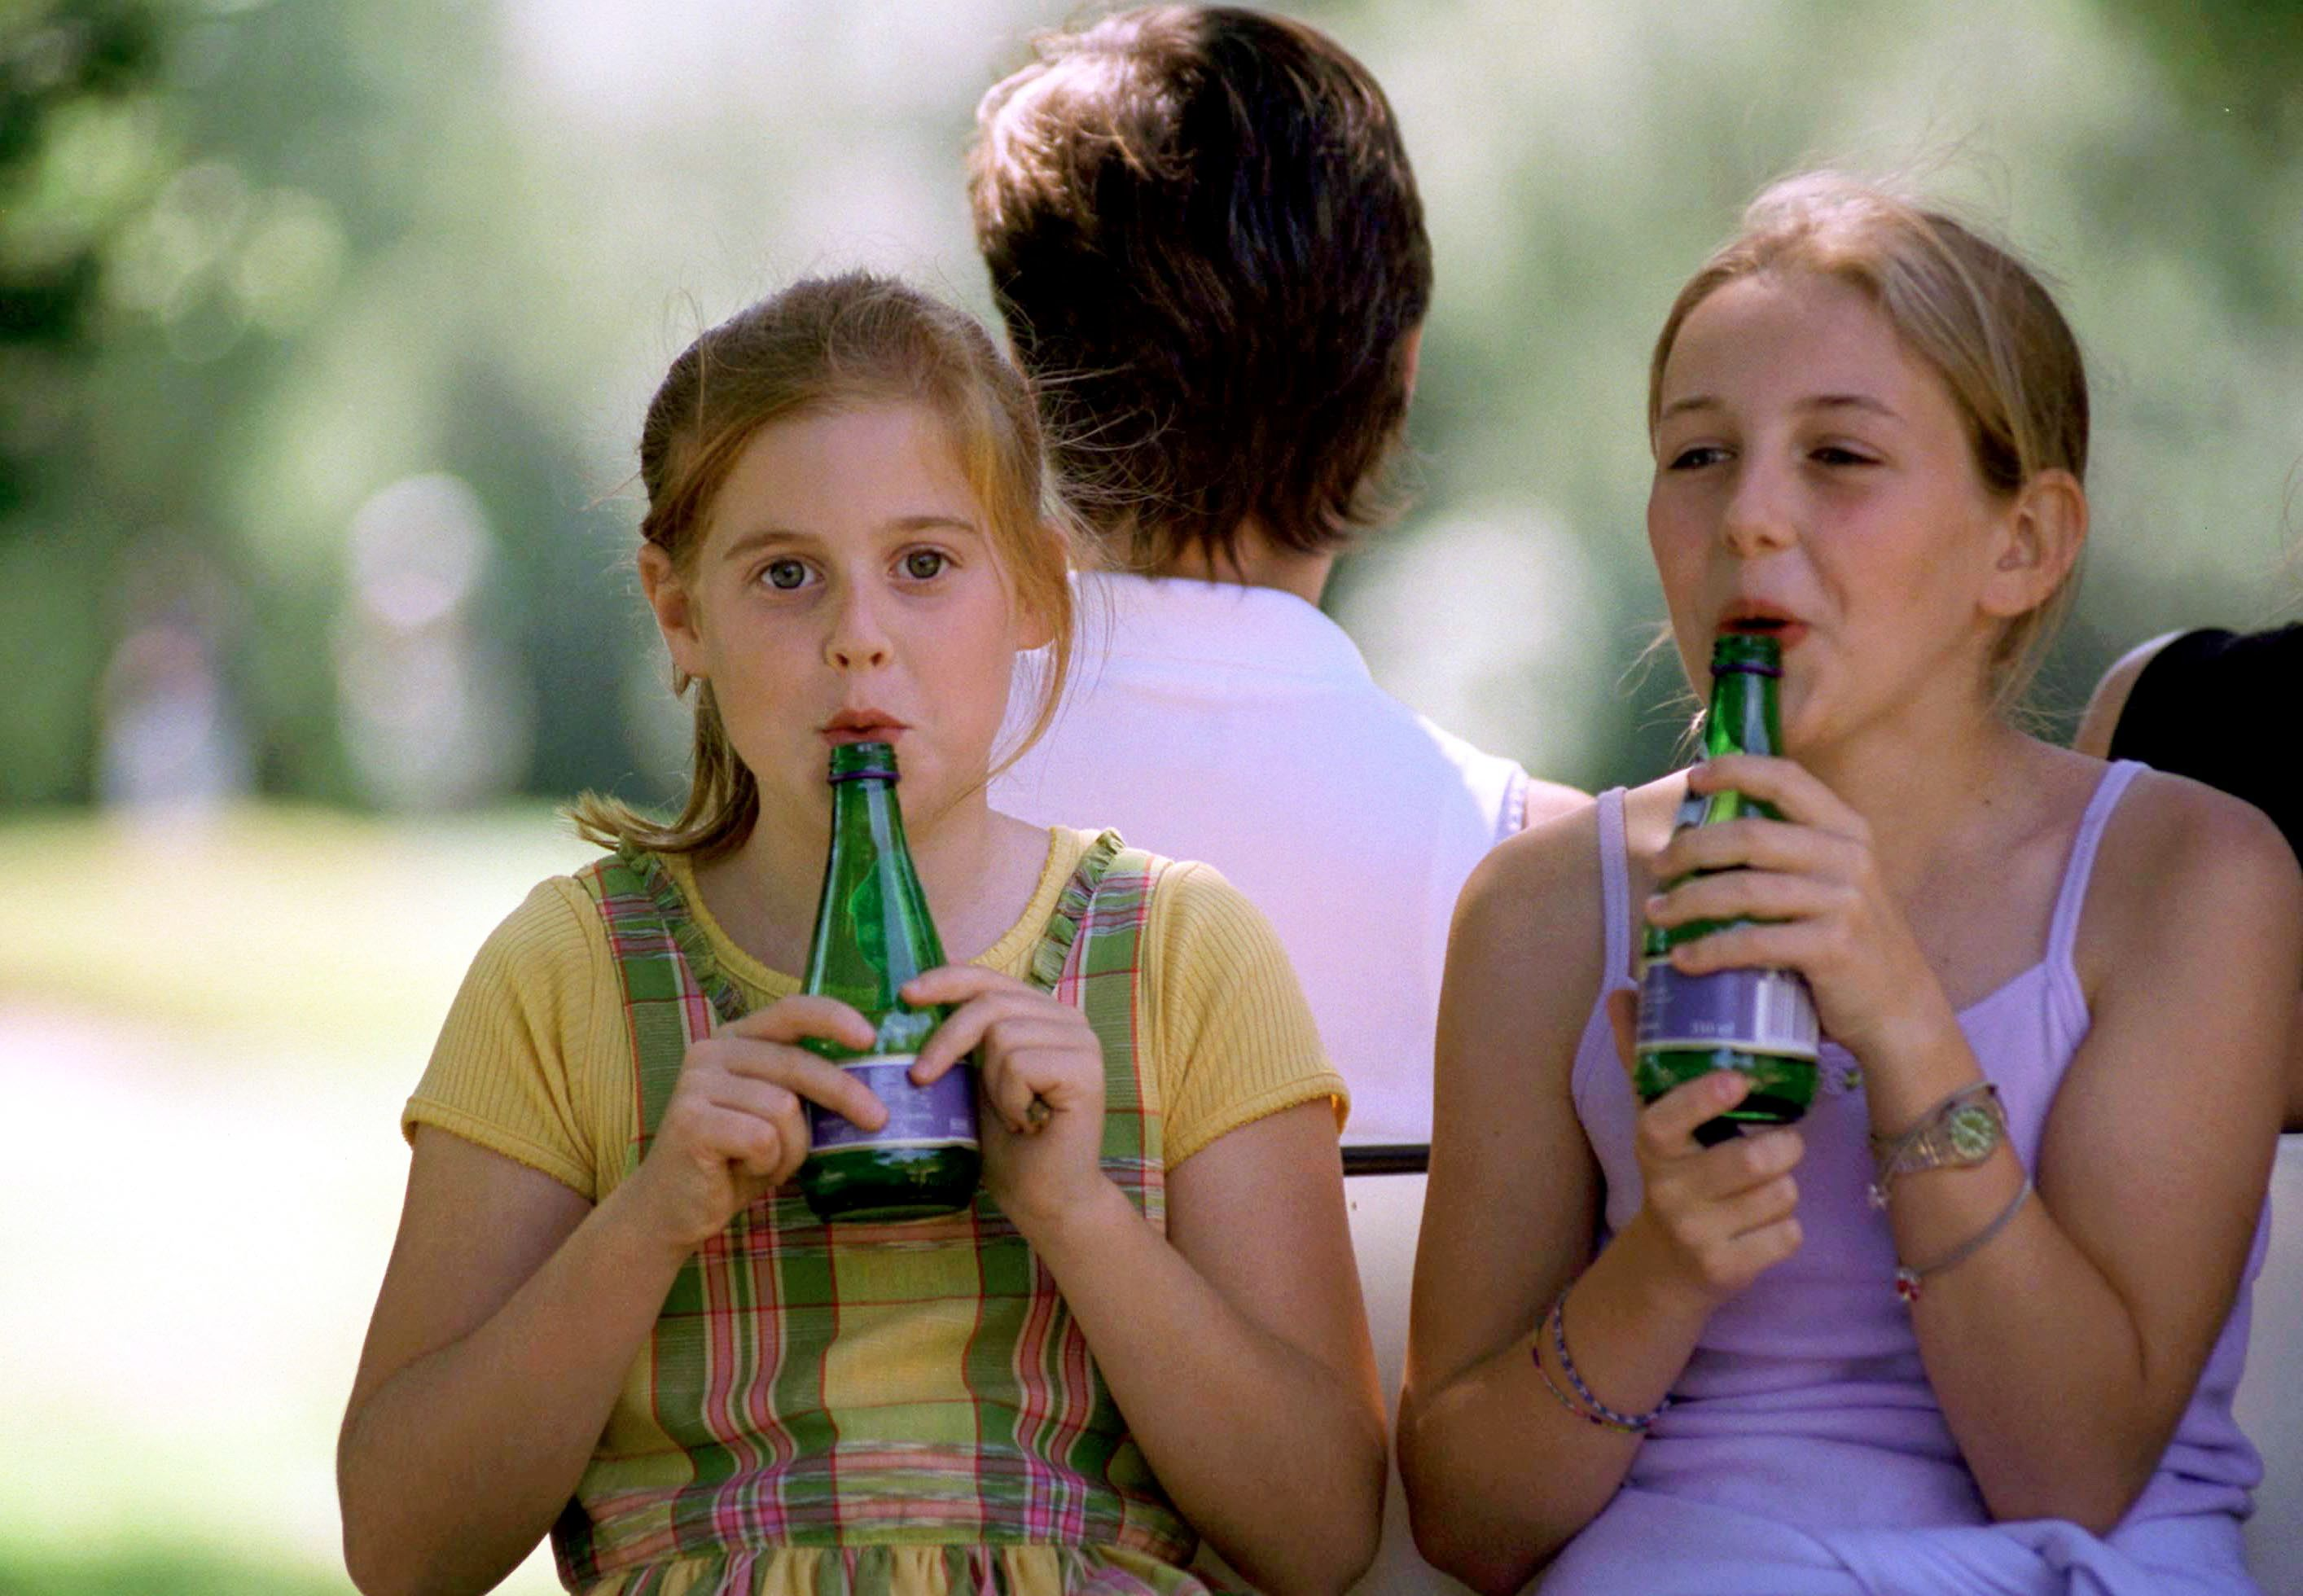 WENTWORTH, UNITED KINGDOM - JULY 19: Princess Beatrice And Her School Friend Laura Gallacher [11-year-old Daughter Of International Golfer Bernie Gallacher] Having Fun Making Tunes By Blowing Across The Tops Of Bottles At Wentworth Golf Club Charity Golf Tournament In Aid Of Children In Crisis. (Photo by Tim Graham Photo Library via Getty Images)